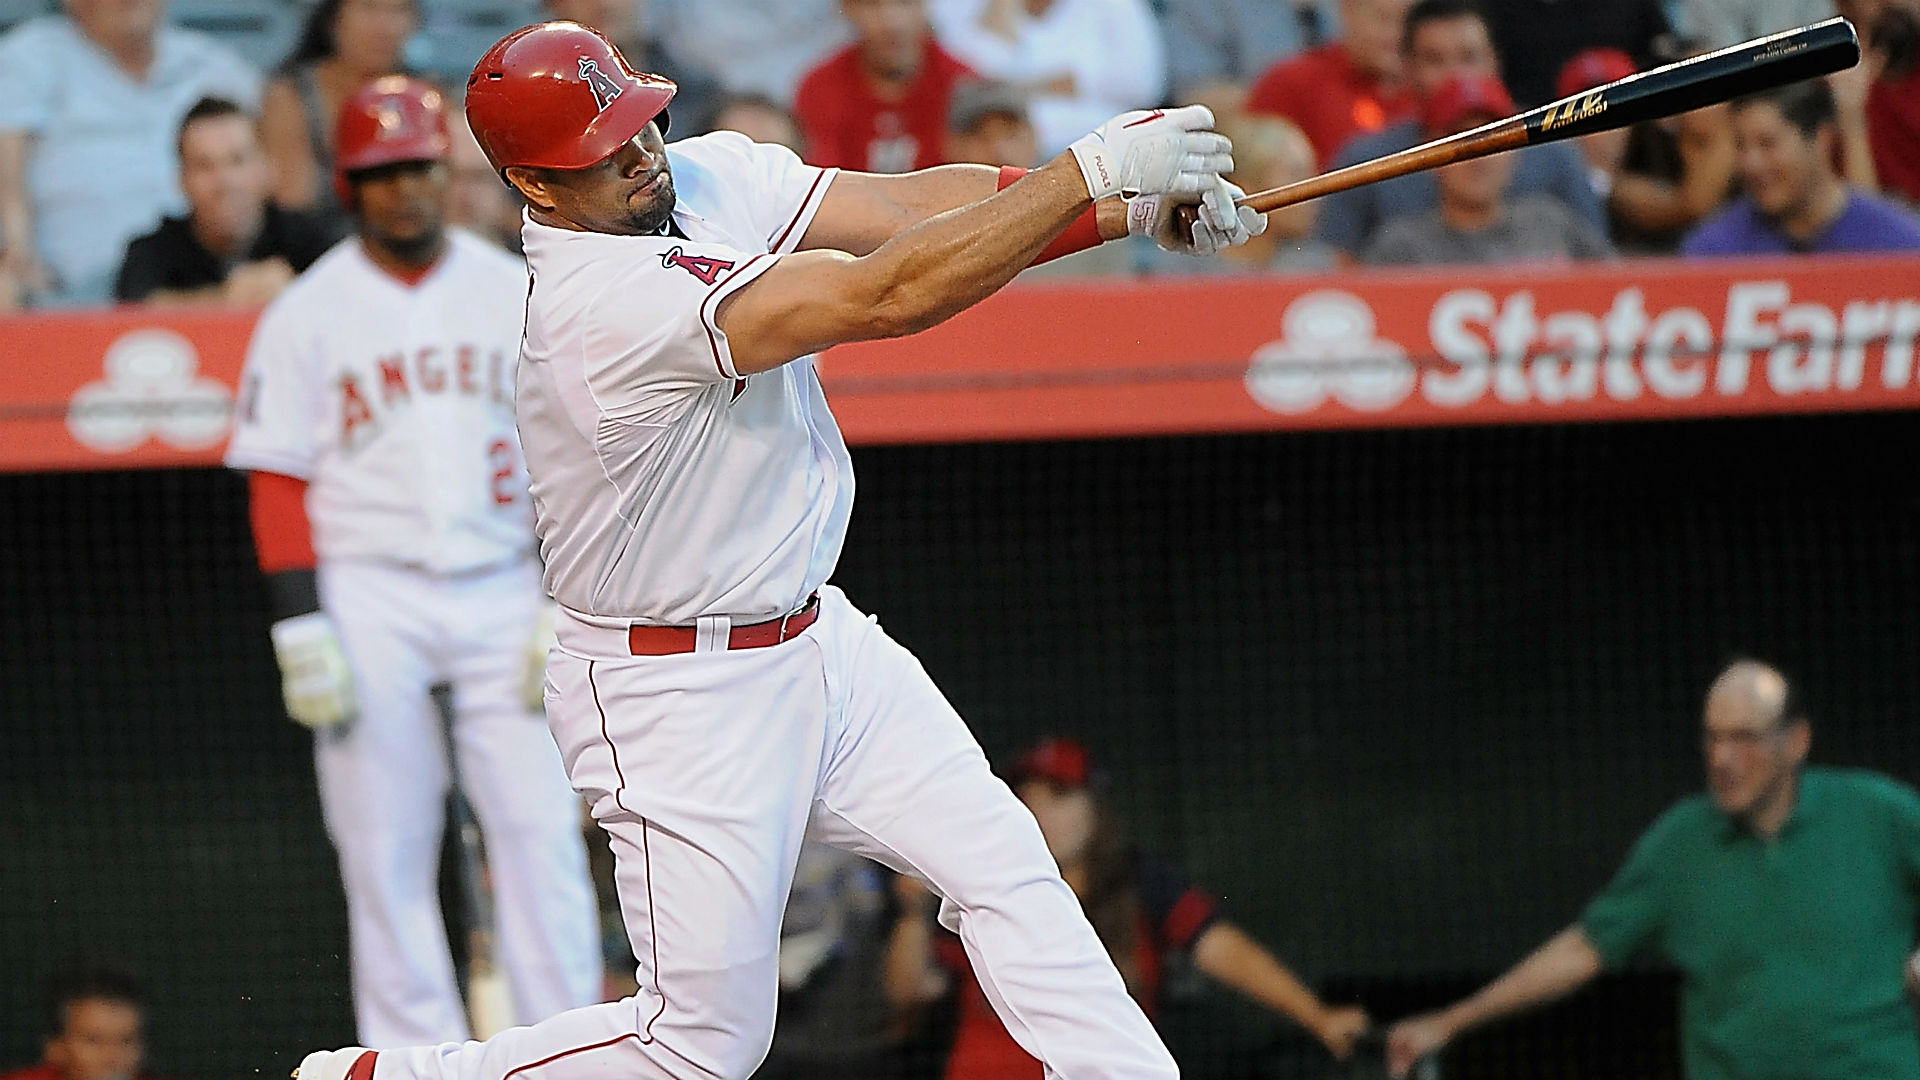 Pujols-albert-072015-usnews-getty-ftr_1dna0eokmqrvg1o3dbhhyn1a8a